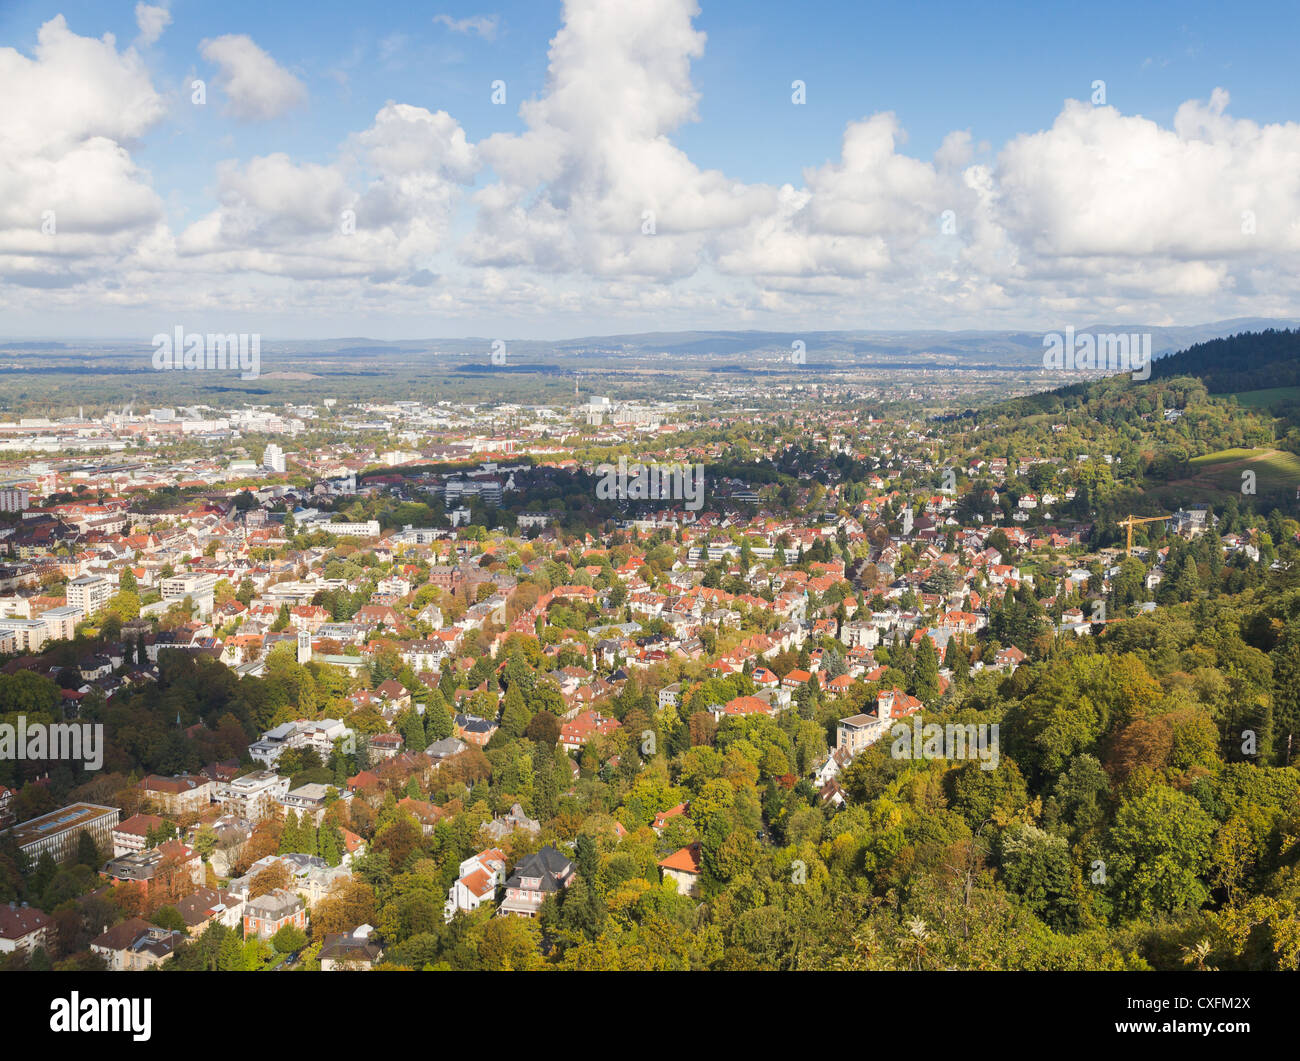 Panorma aerial view over town Freiburg im Breisgau in green valley, Germany Stock Photo